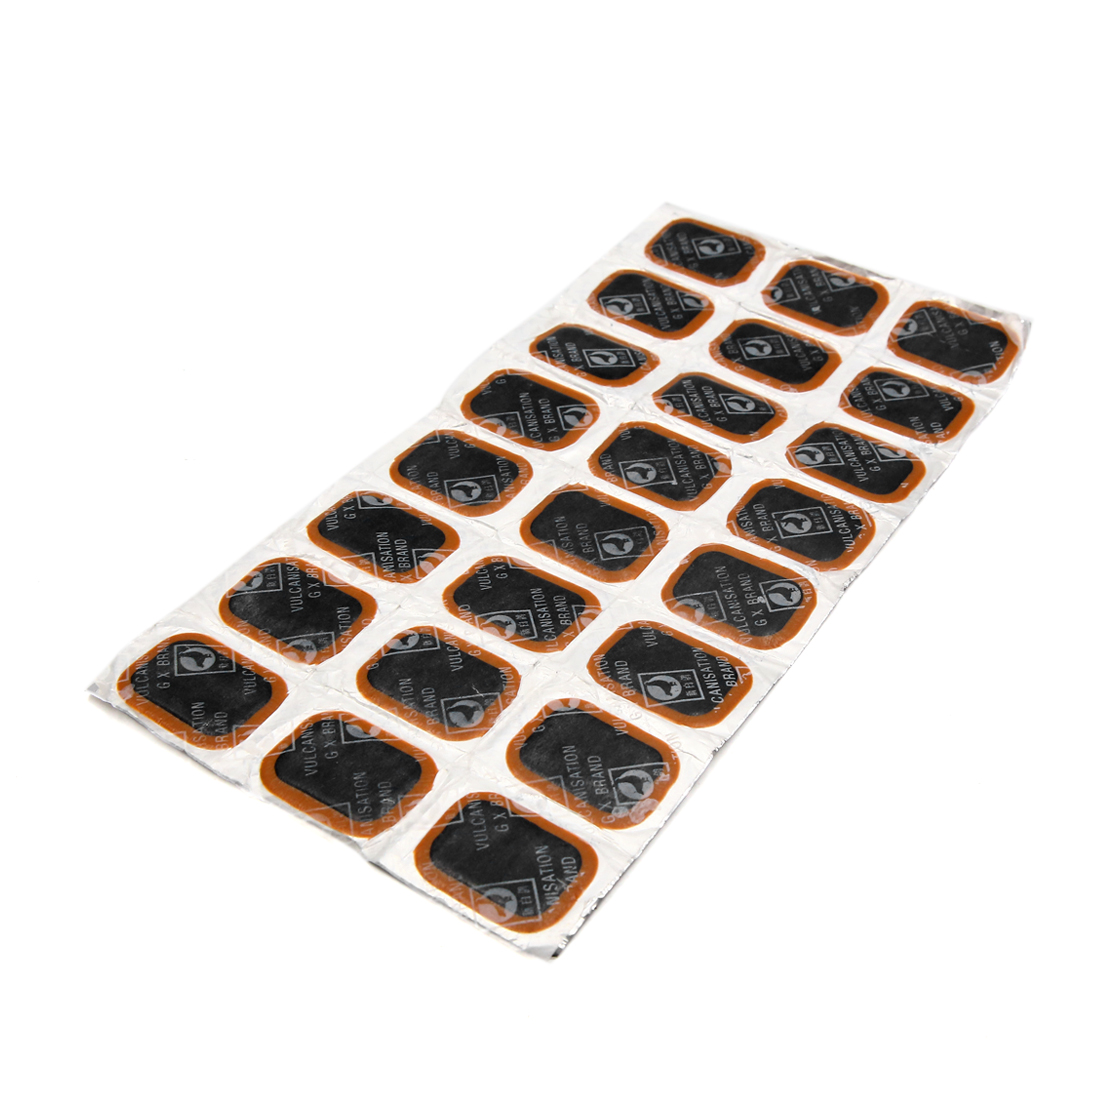 24pcs Rubber Square Type Bike Tire Tyre Puncture Repair Patches Tool 35 x 24mm